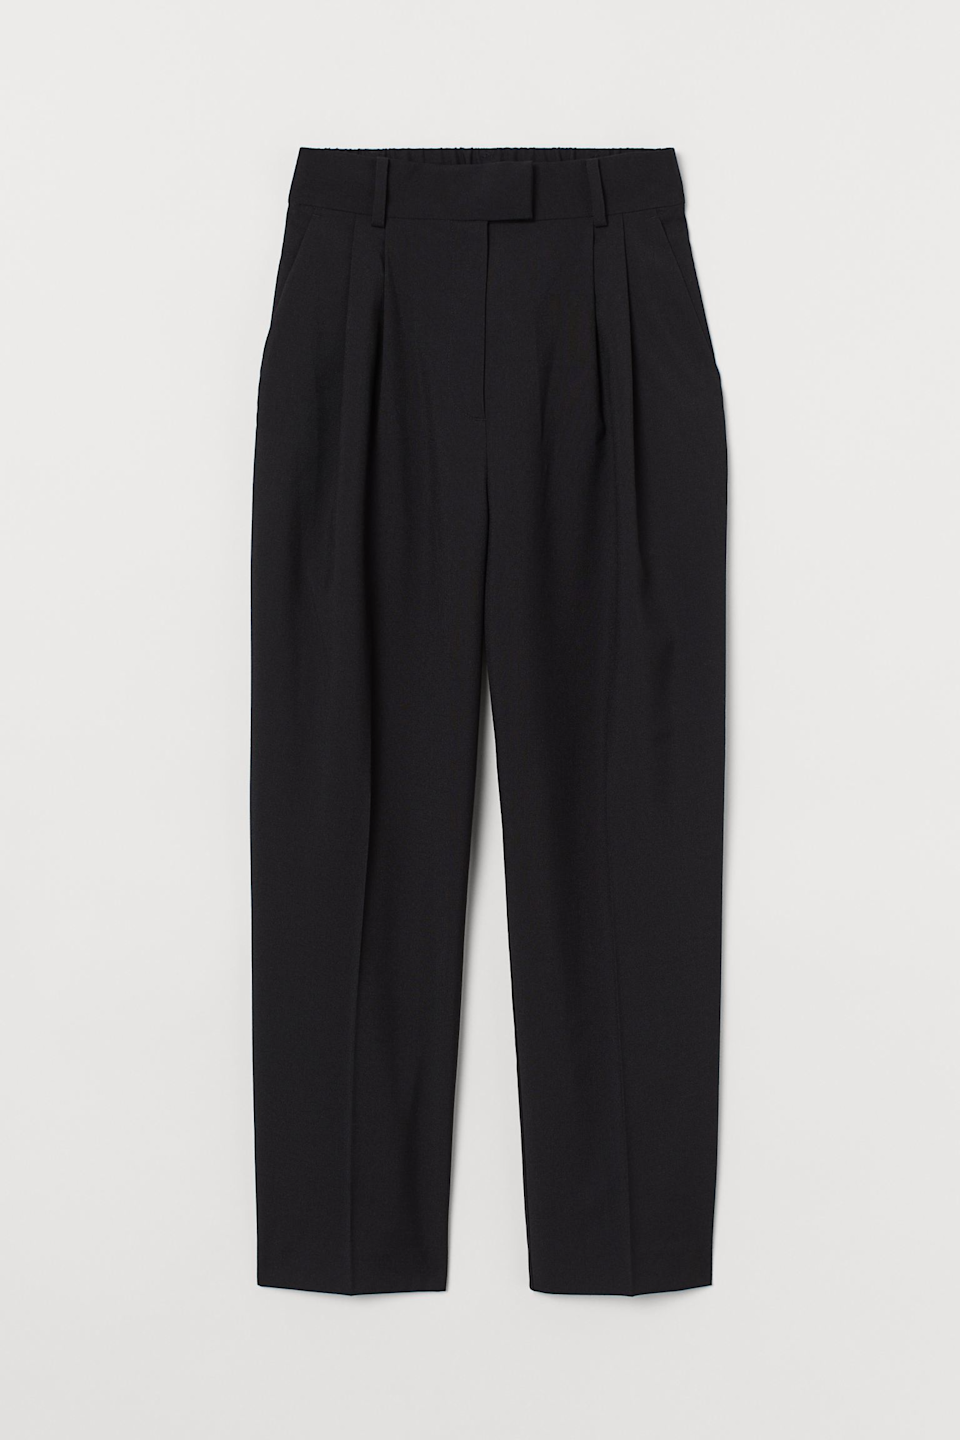 """<br><br><strong>H&M</strong> Creased Pants, $, available at <a href=""""https://go.skimresources.com/?id=30283X879131&url=https%3A%2F%2Fwww2.hm.com%2Fen_us%2Fproductpage.0909721001.html"""" rel=""""nofollow noopener"""" target=""""_blank"""" data-ylk=""""slk:H&M"""" class=""""link rapid-noclick-resp"""">H&M</a>"""